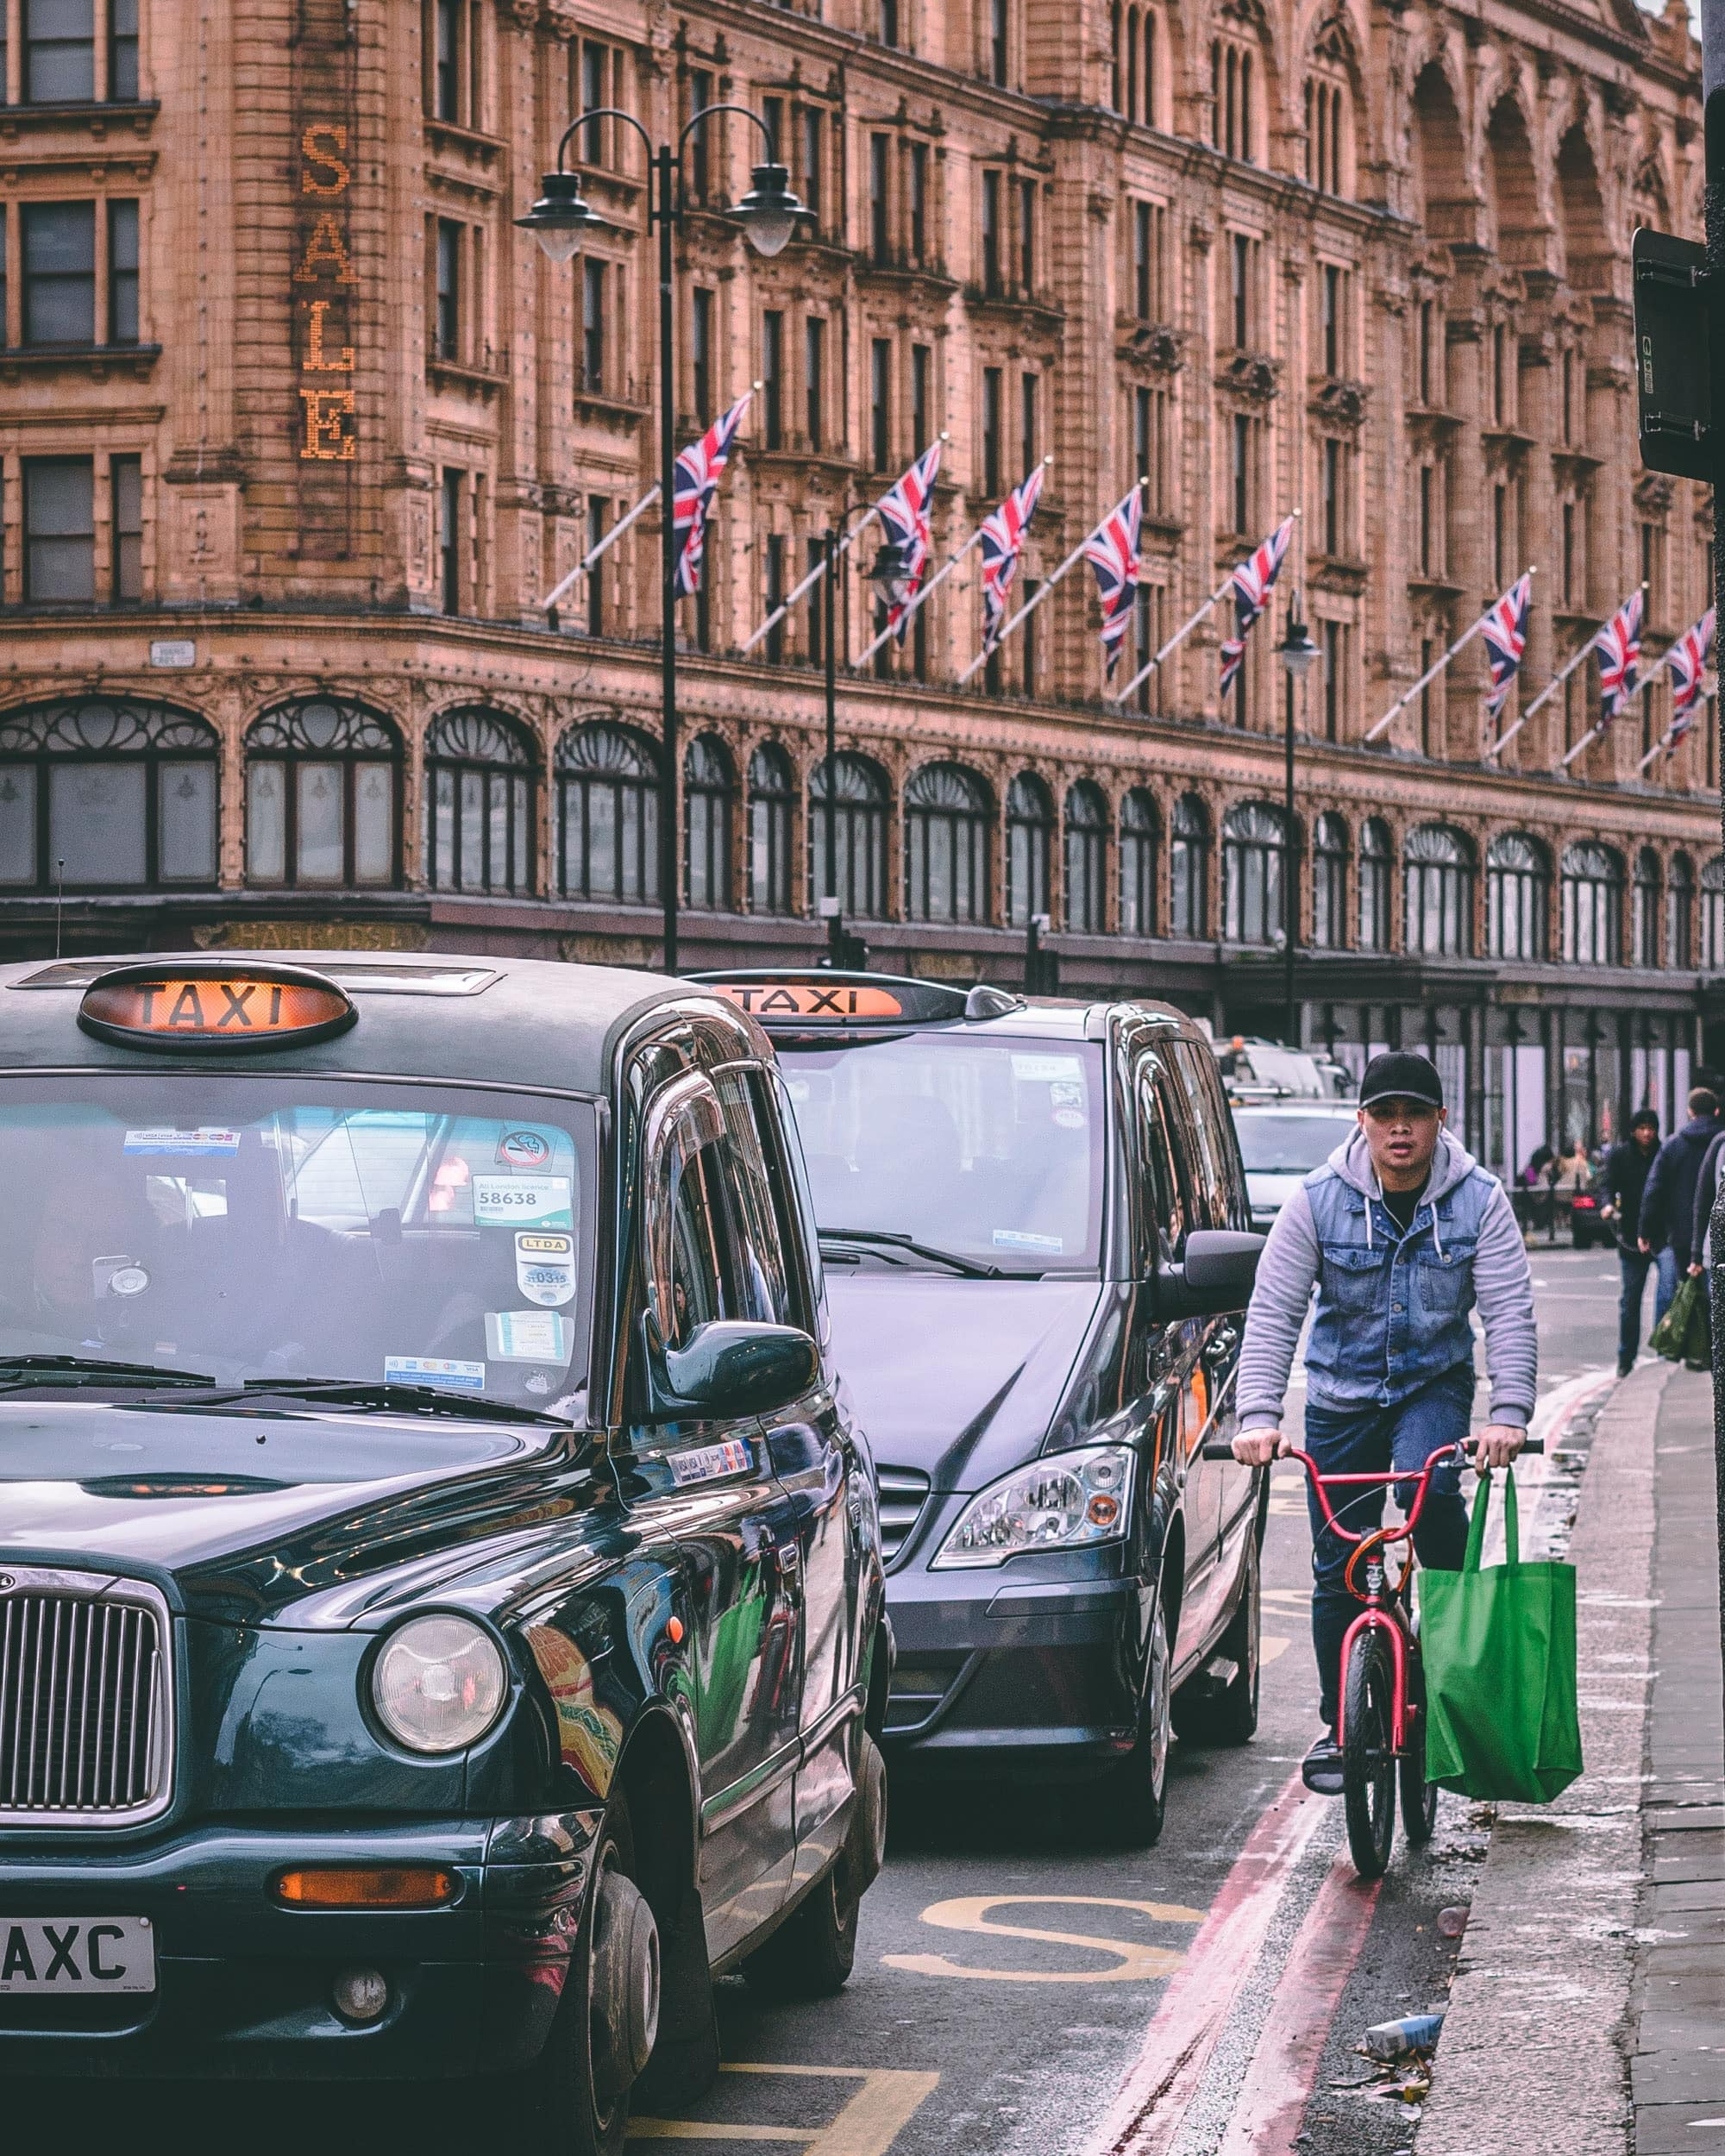 Photo of cabs and a bicycle rider